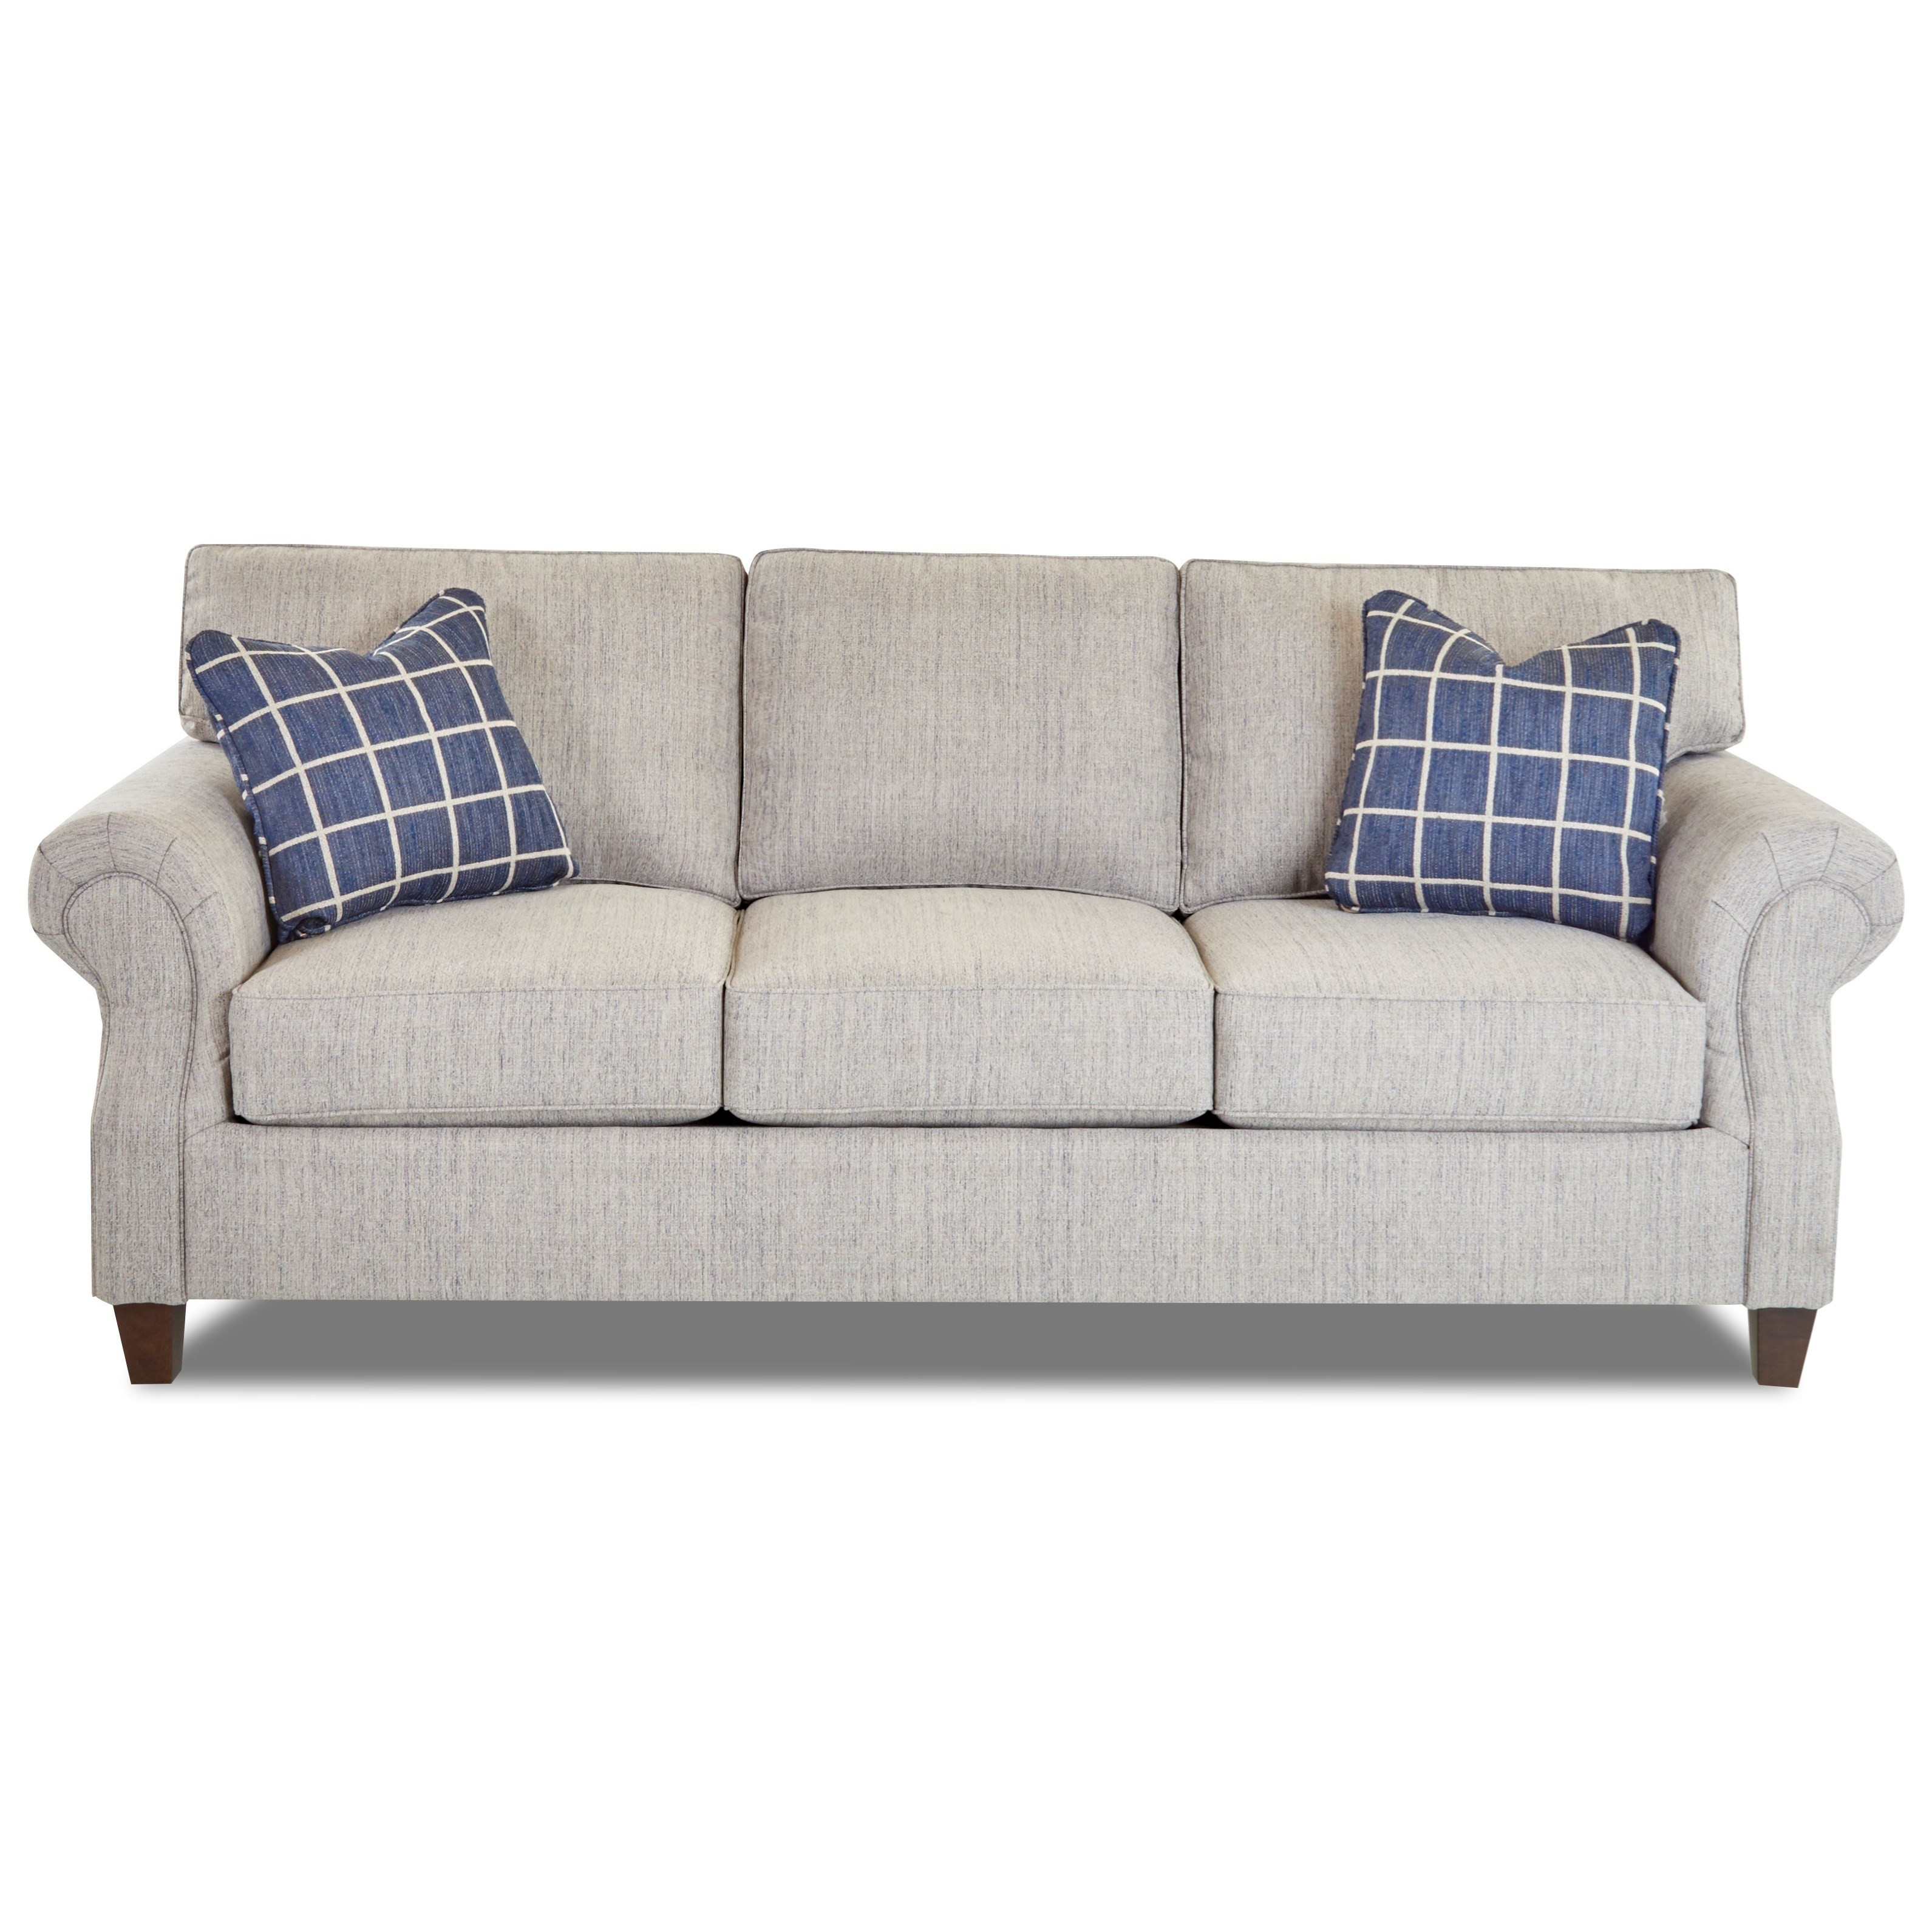 Serena Casual Sofa by Klaussner at Van Hill Furniture